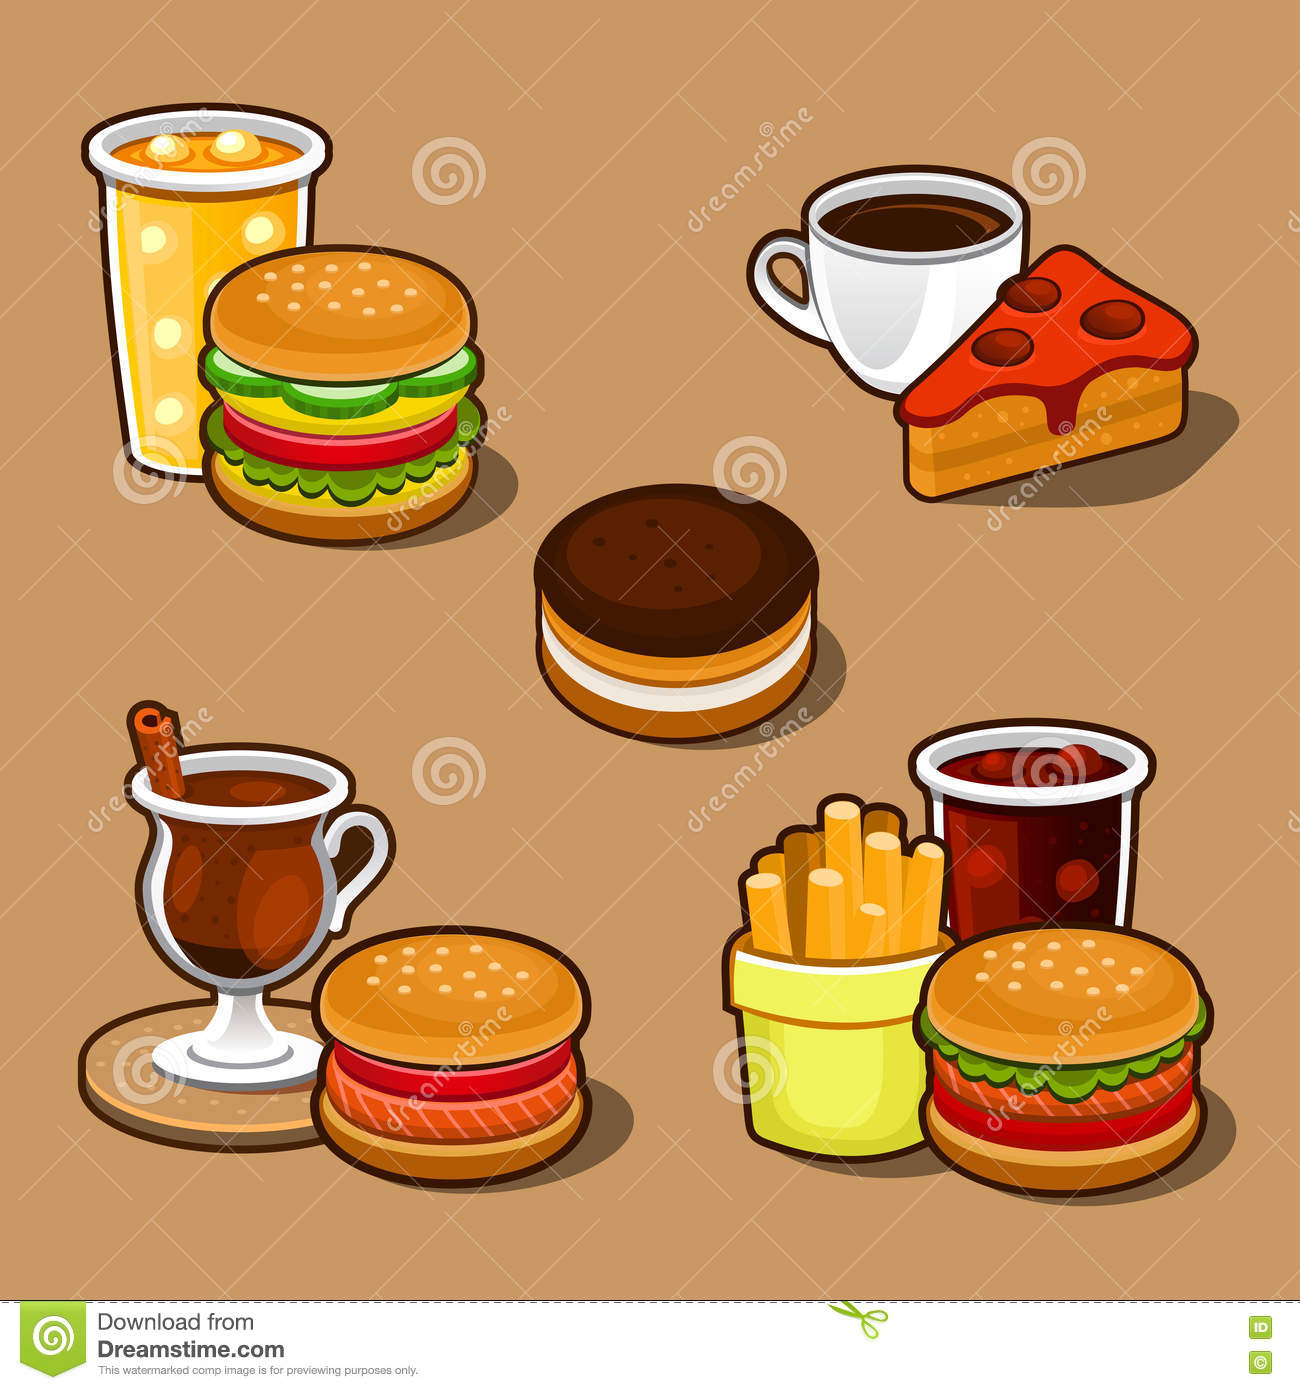 Set Of Colorful Cartoon Fast Food And Cake. Stock Photos - Image ...